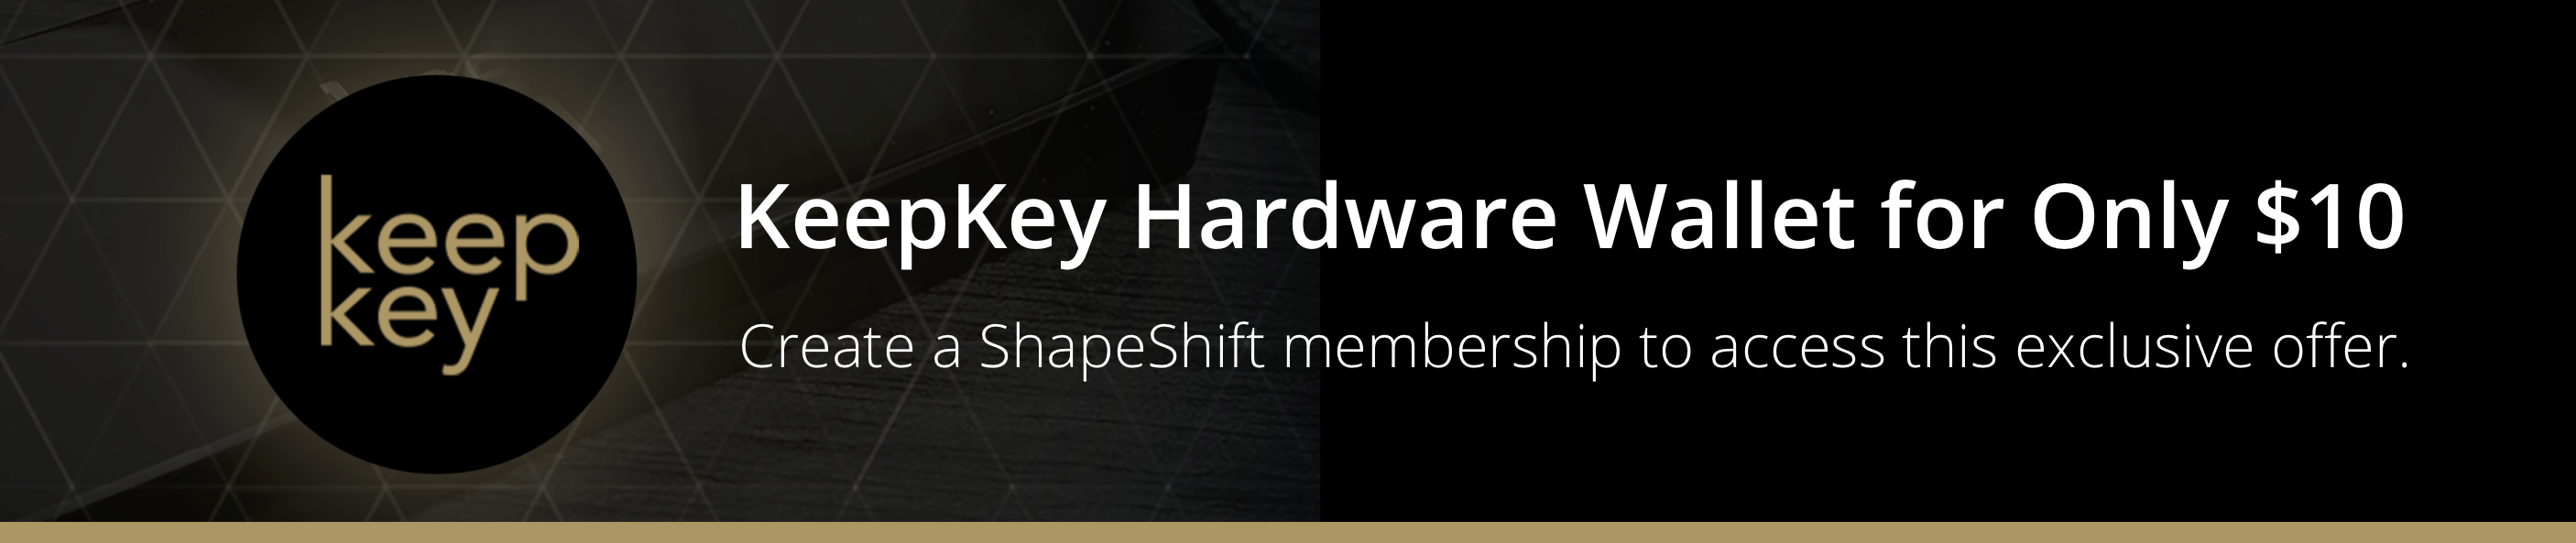 KeepKey Hardware Wallet for only $10 when you join ShapeShift.